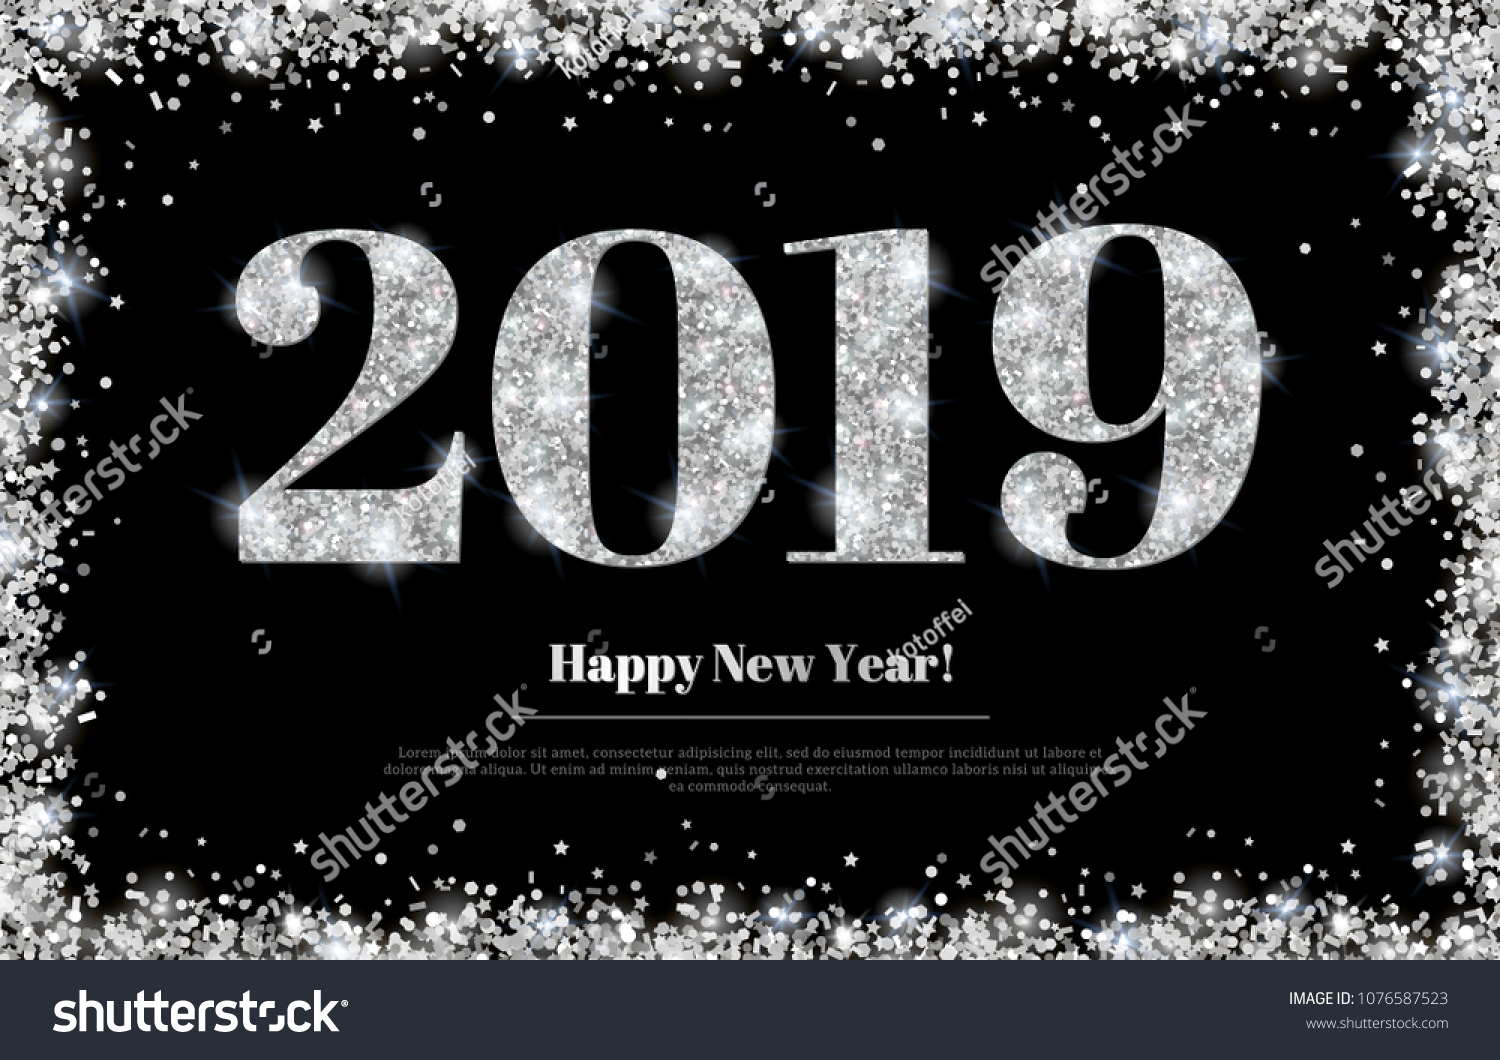 Happy New Year 2019 Greeting Card with Silver Numbers and Confetti Frame on Black Background. Vector Illustration. Merry Christmas Flyer or Poster Design #1076587523